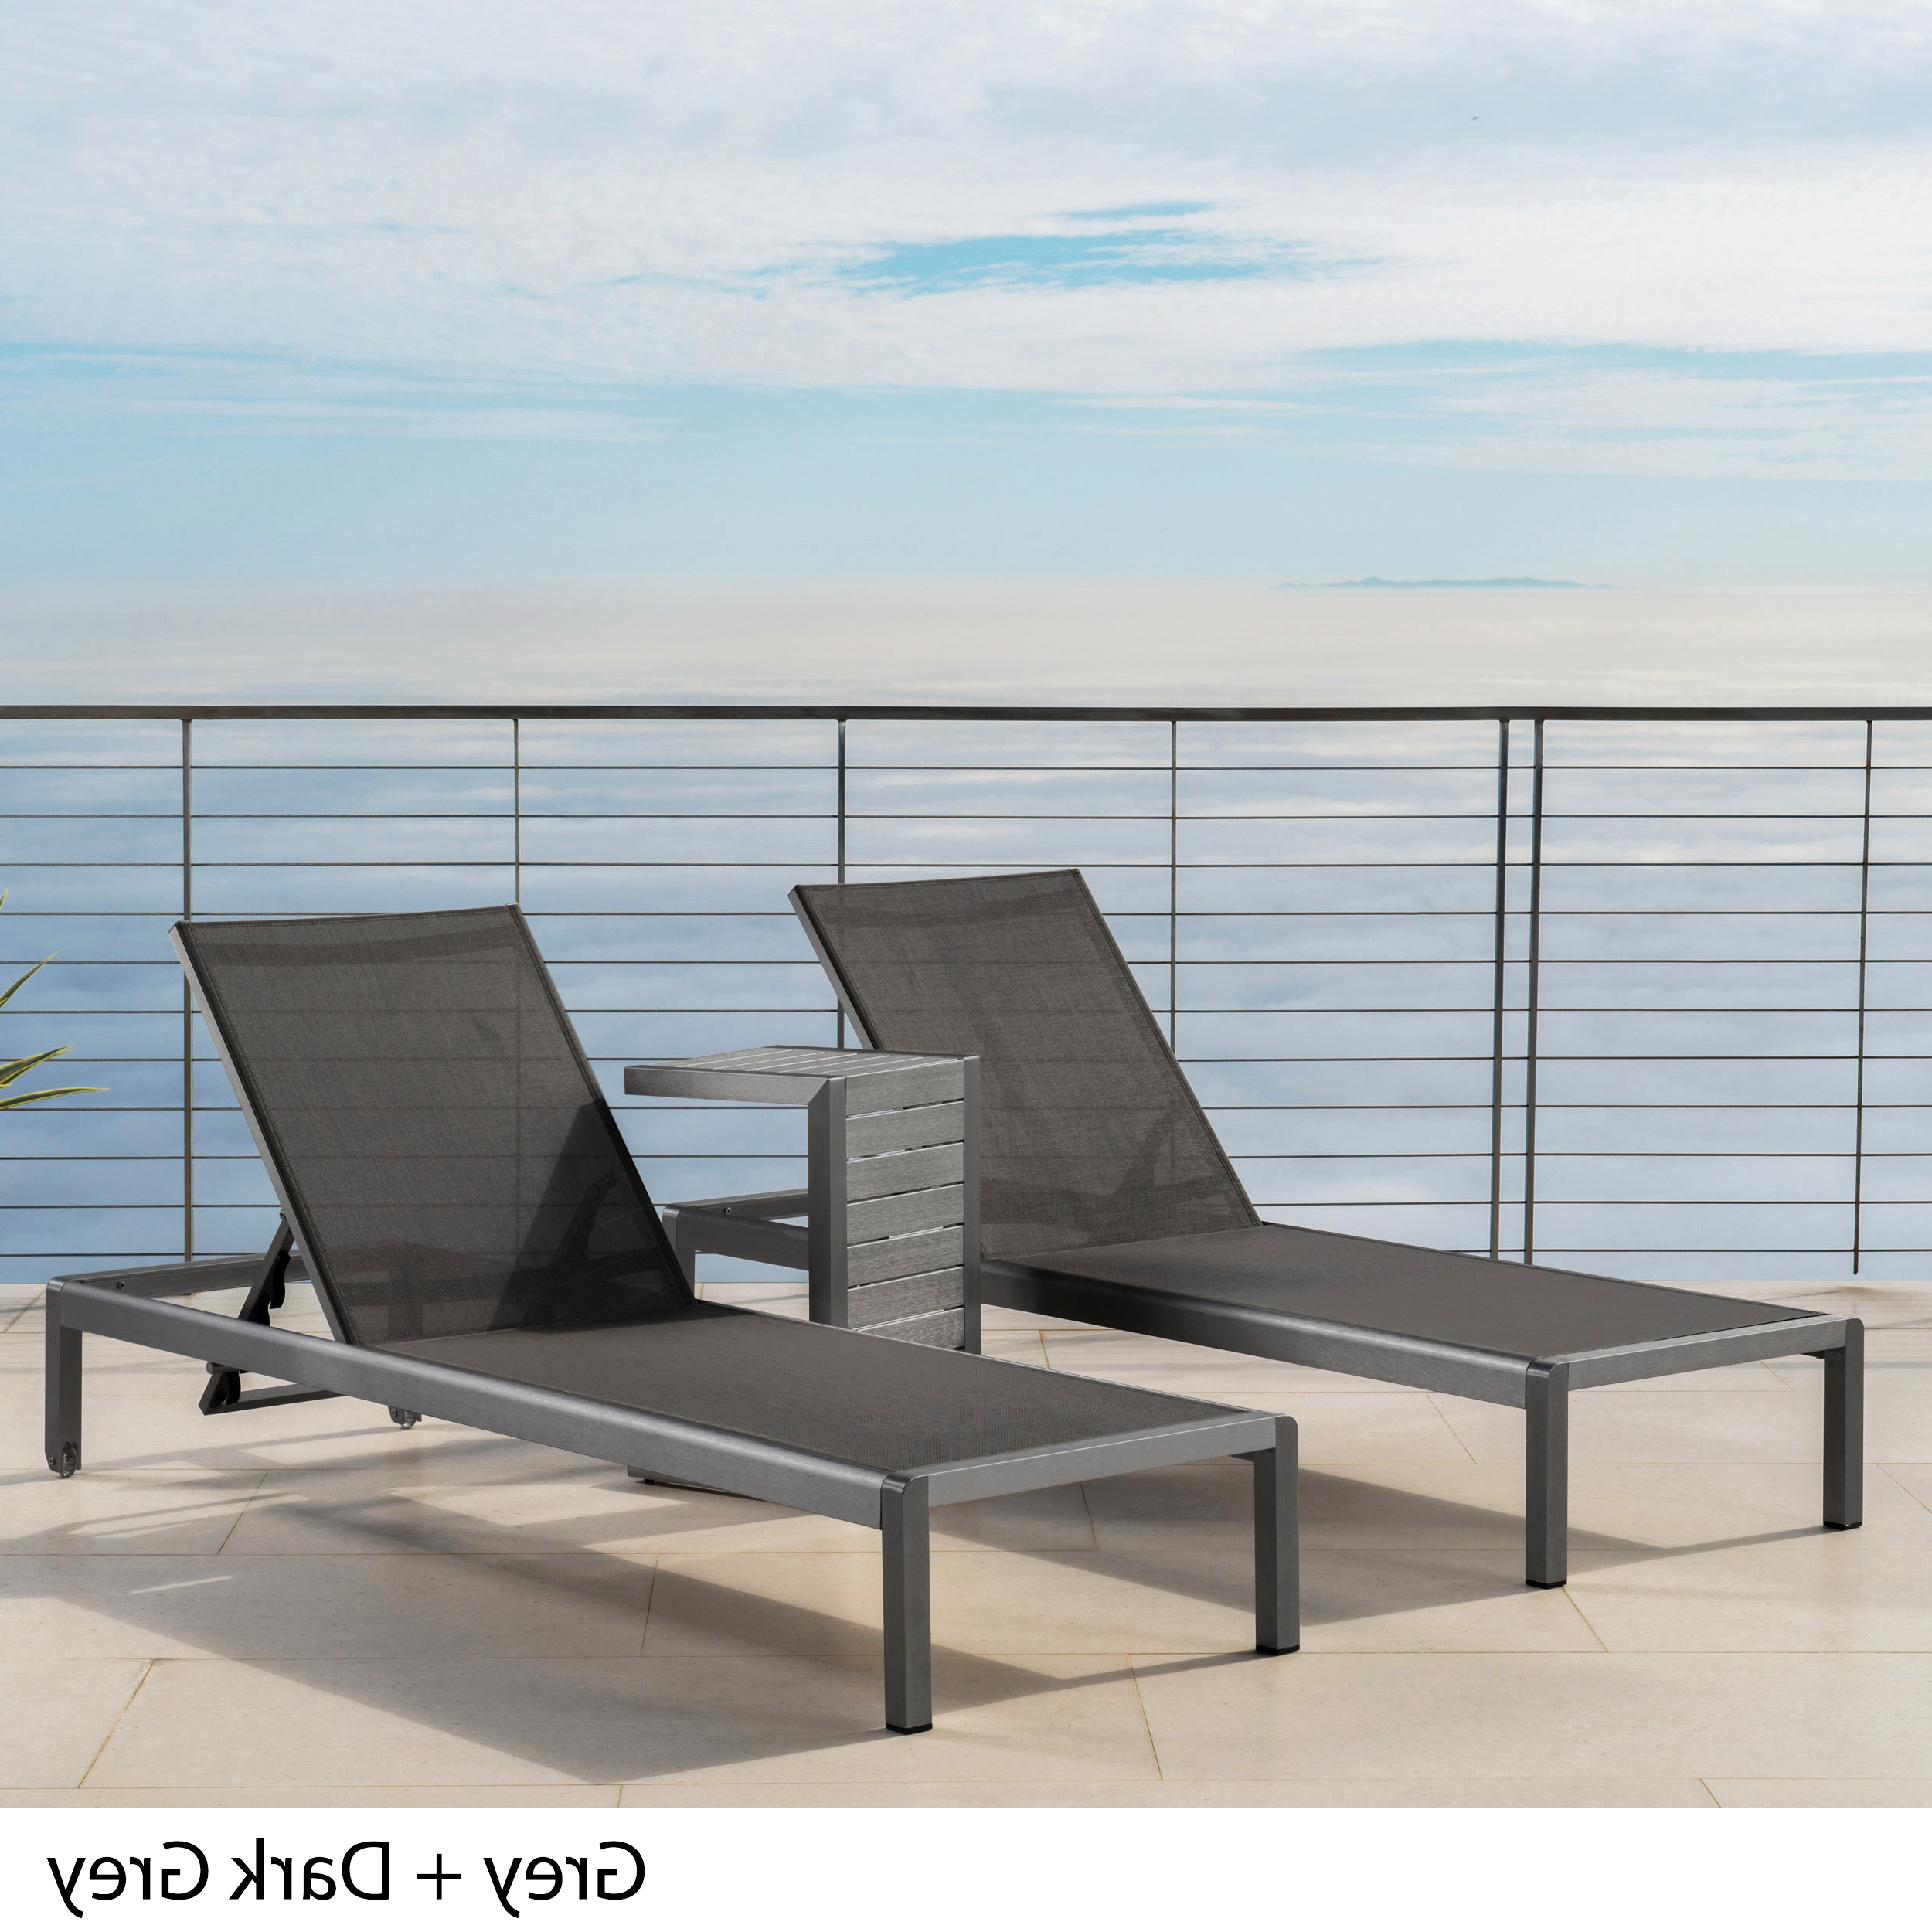 Outdoor Aluminum Chaise Lounges Inside Recent Details About Coral Bay Outdoor Gray Aluminum Chaise Lounge And C Shaped  Side Table (View 17 of 25)